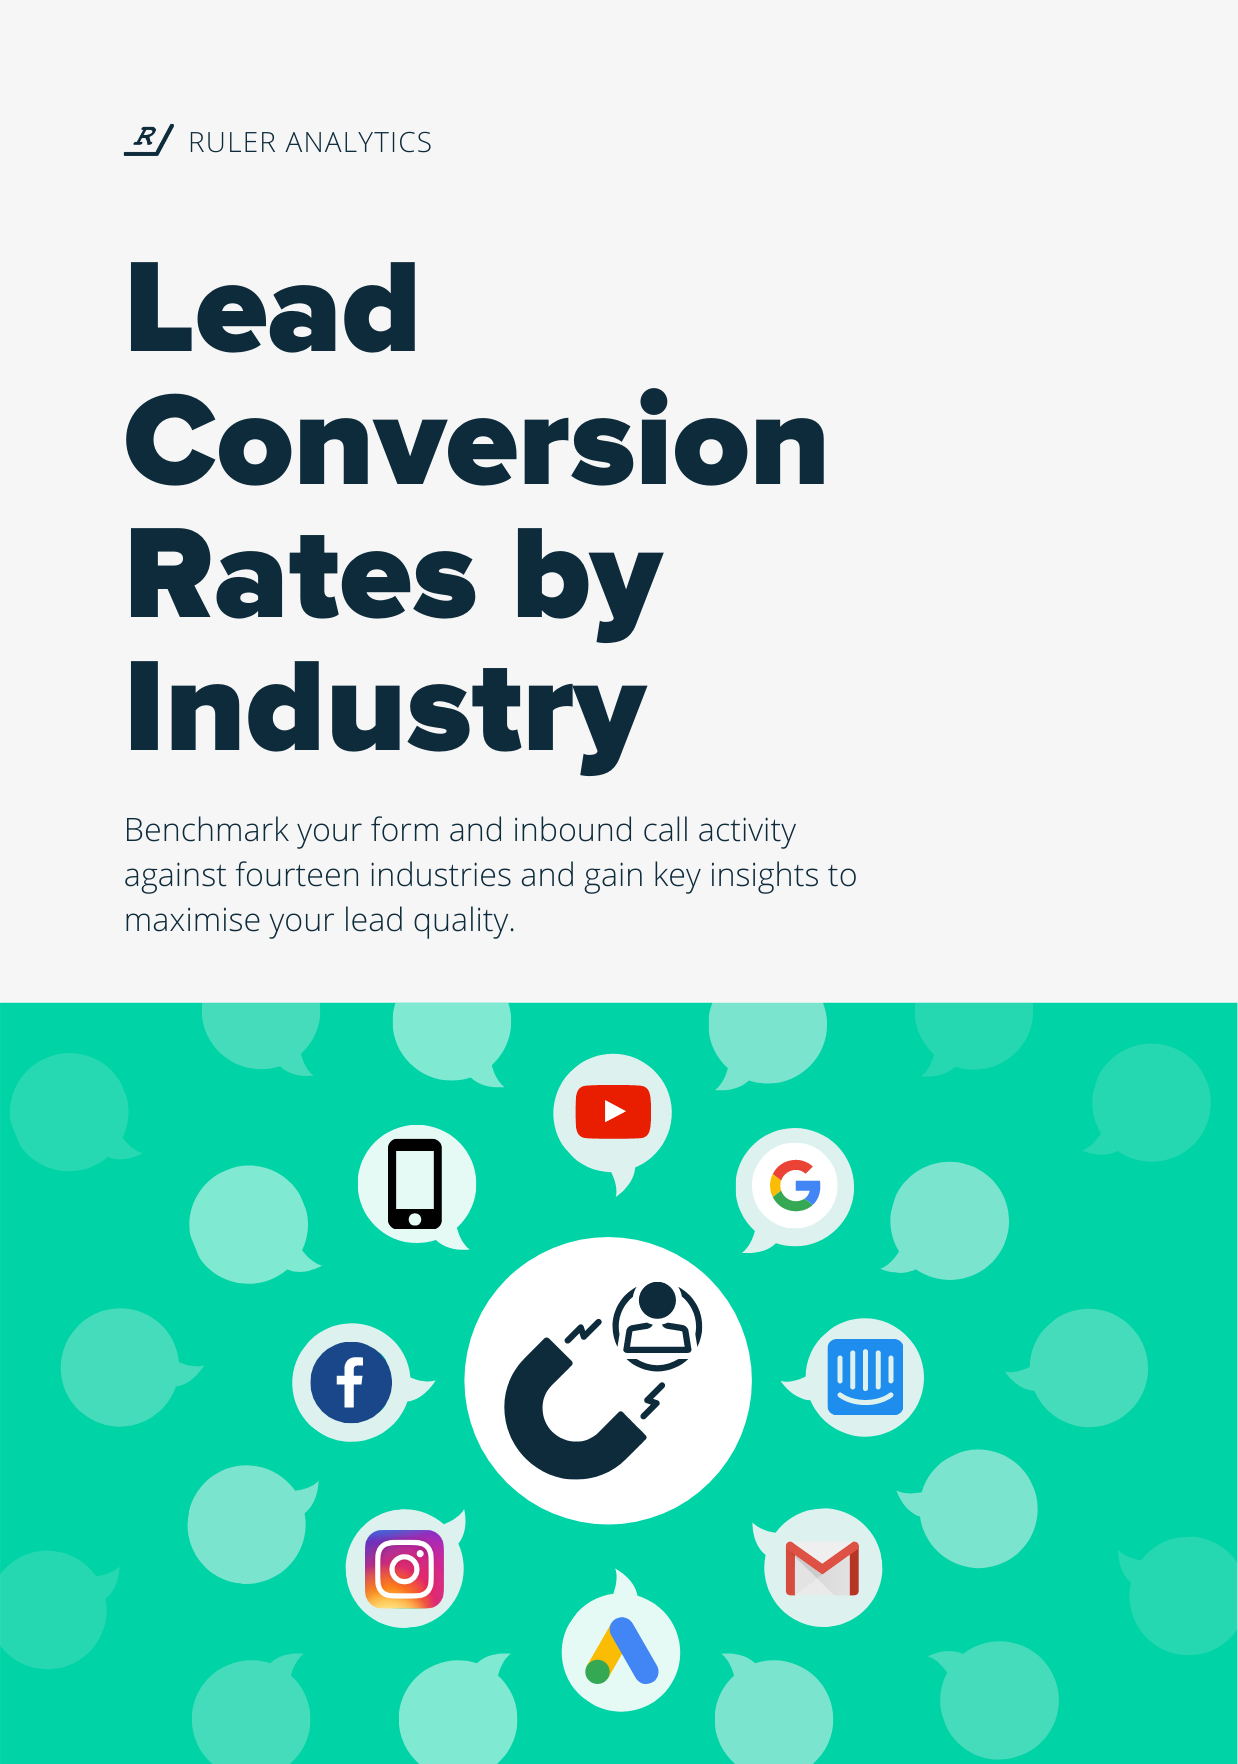 Lead Conversion Rates by Industry